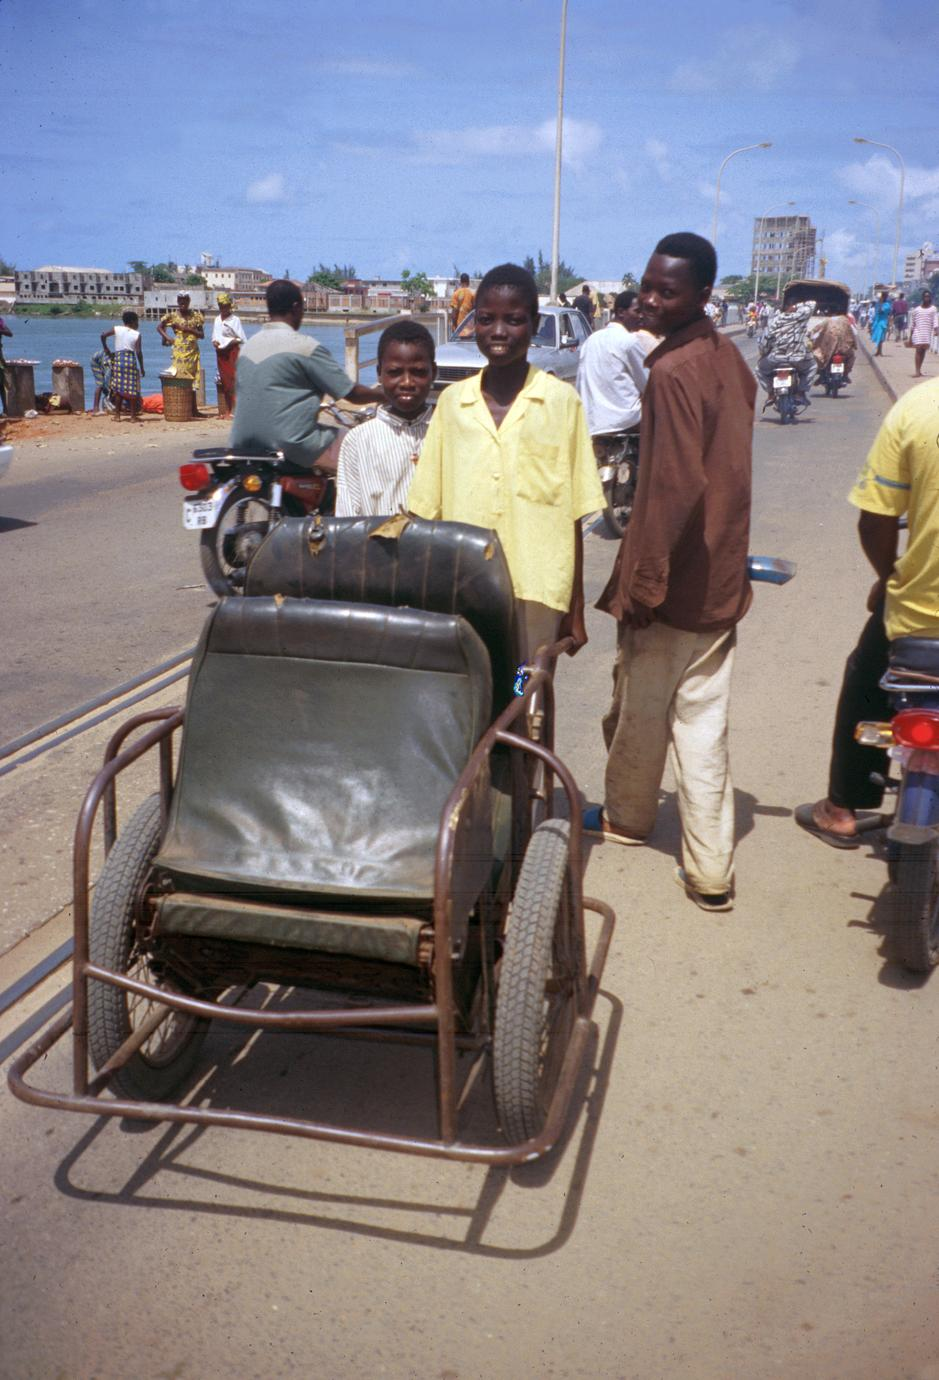 Boys with Cart (Pousse-Pousse) for Tranport